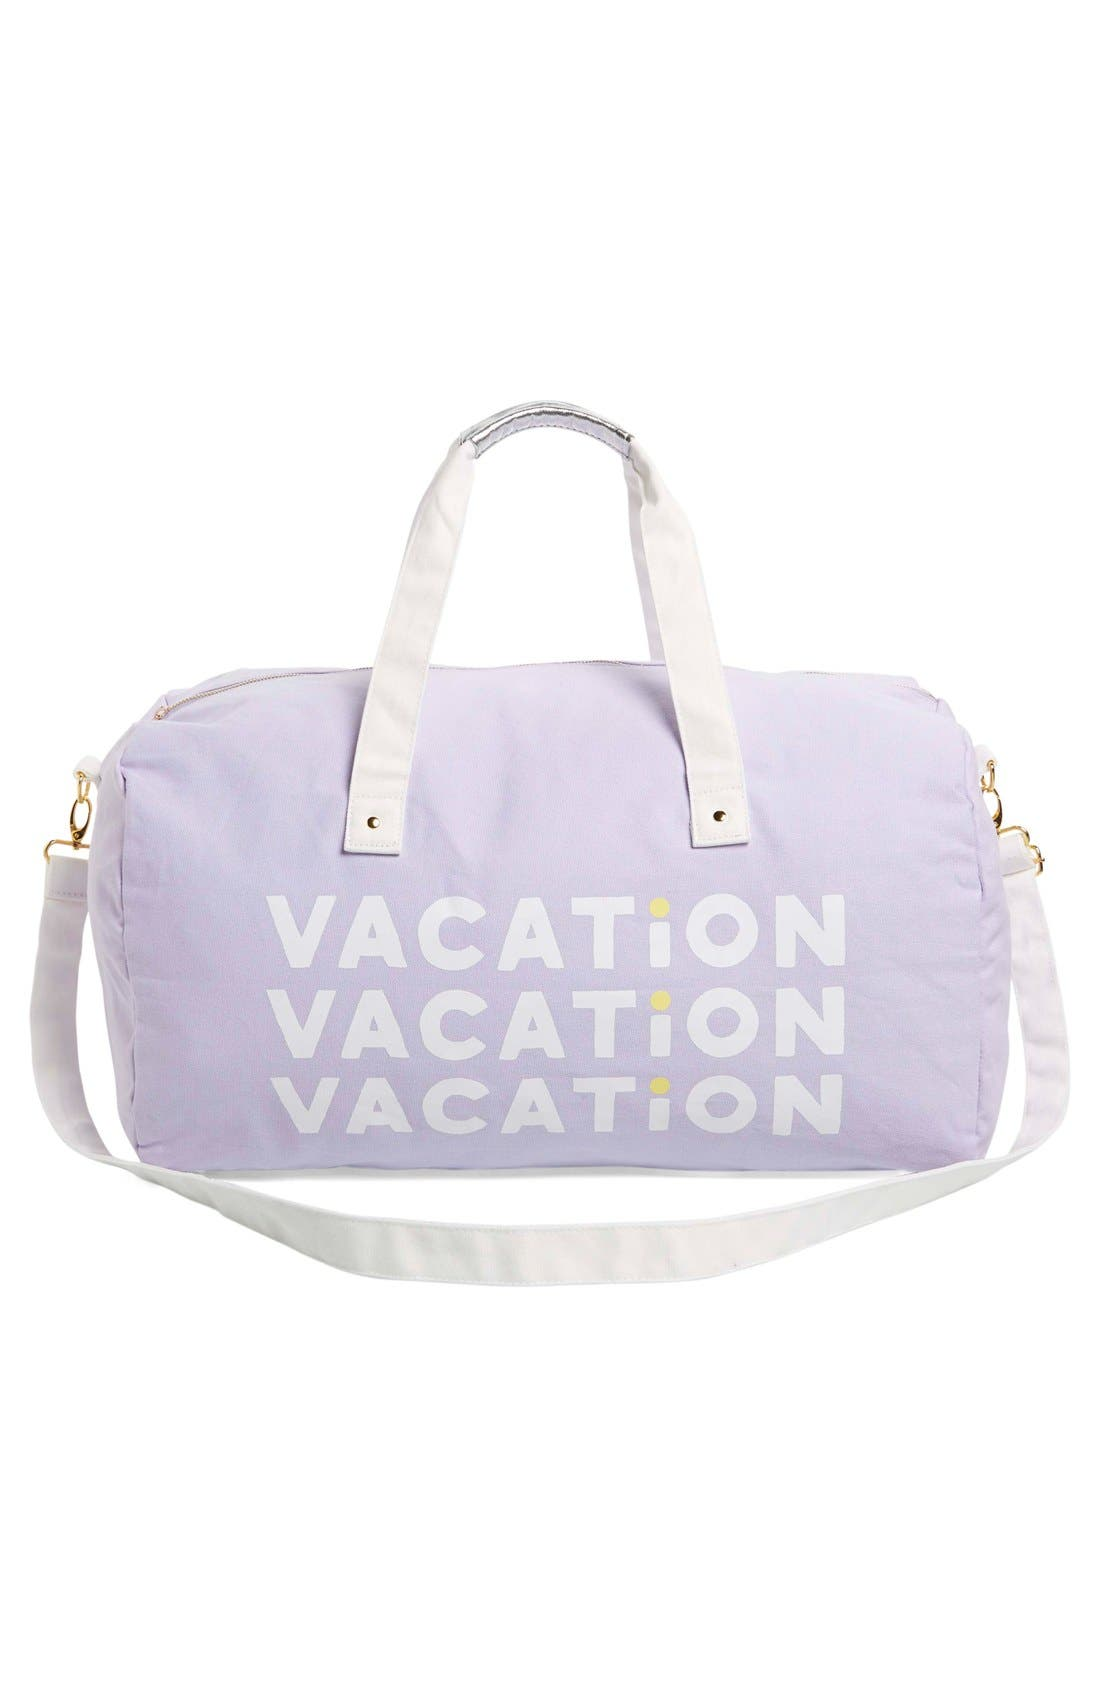 'Vacation Vacation Vacation' Canvas Duffel,                             Alternate thumbnail 3, color,                             Purple